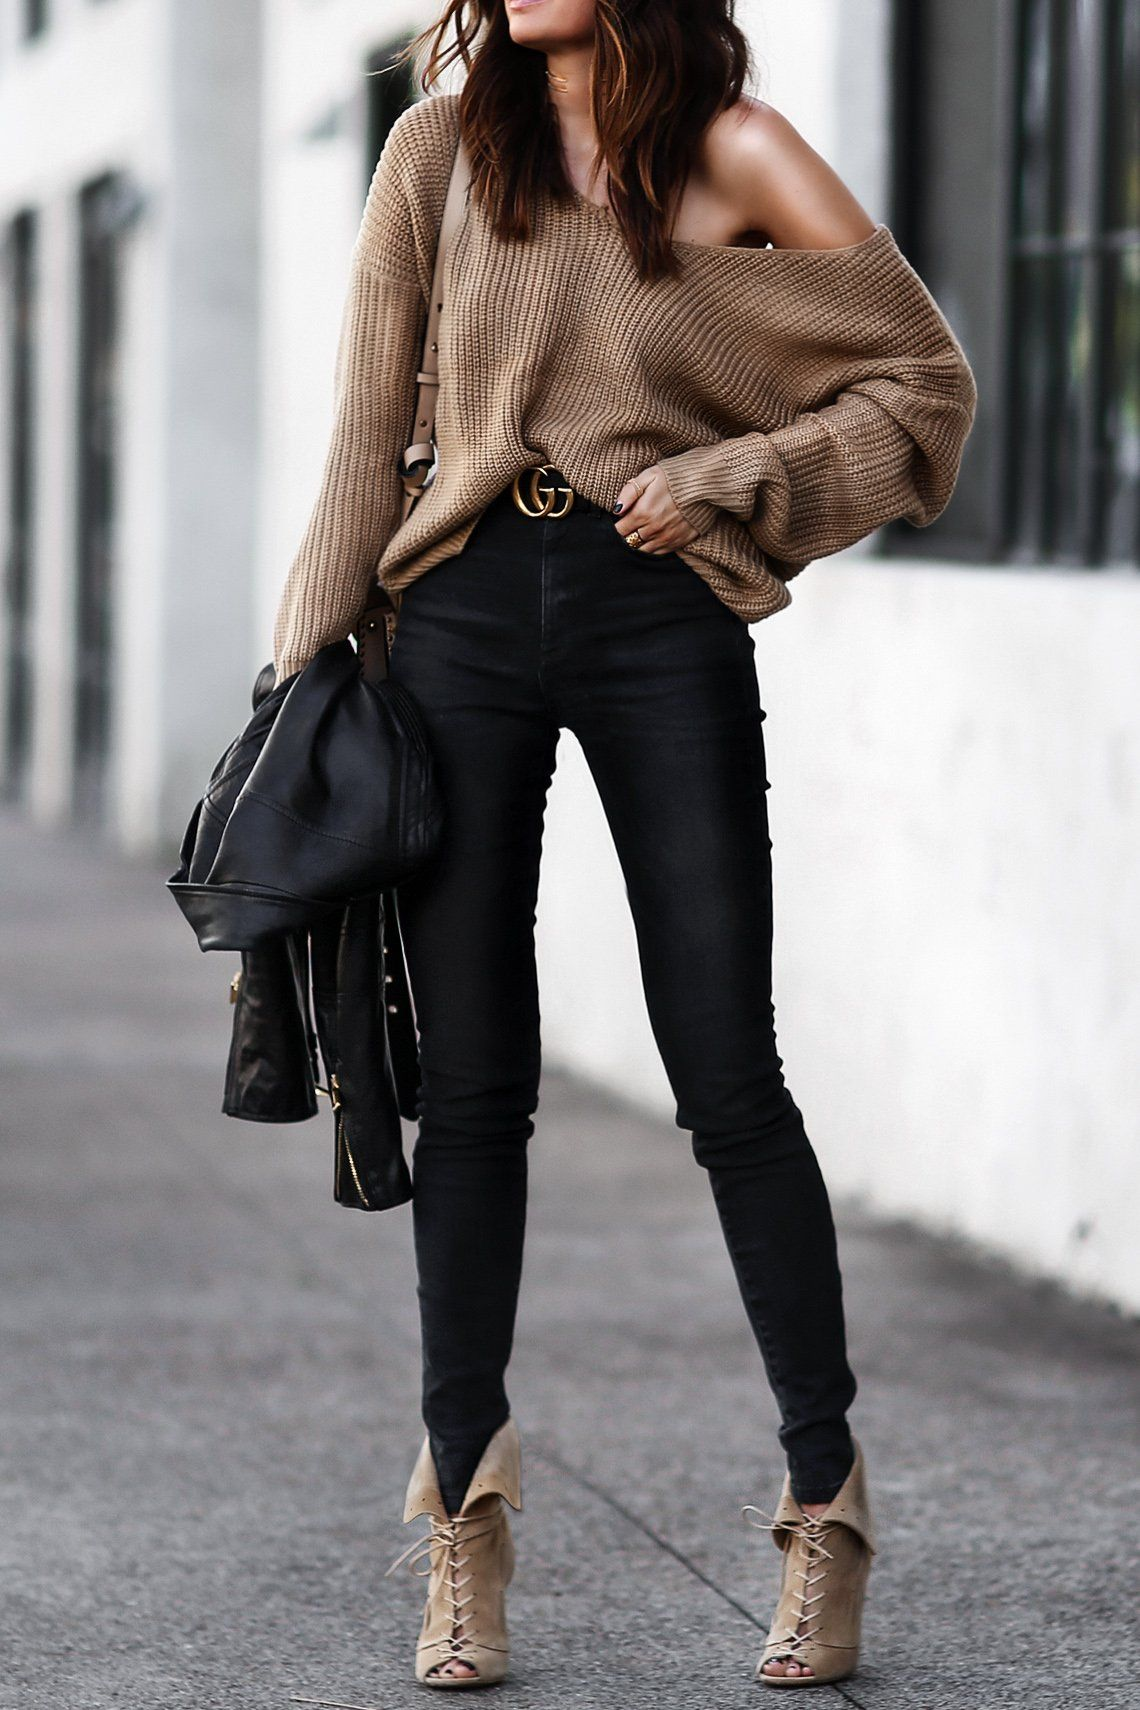 Intense Fashion: Reasons Why You Should Follow The Latest Trends ...